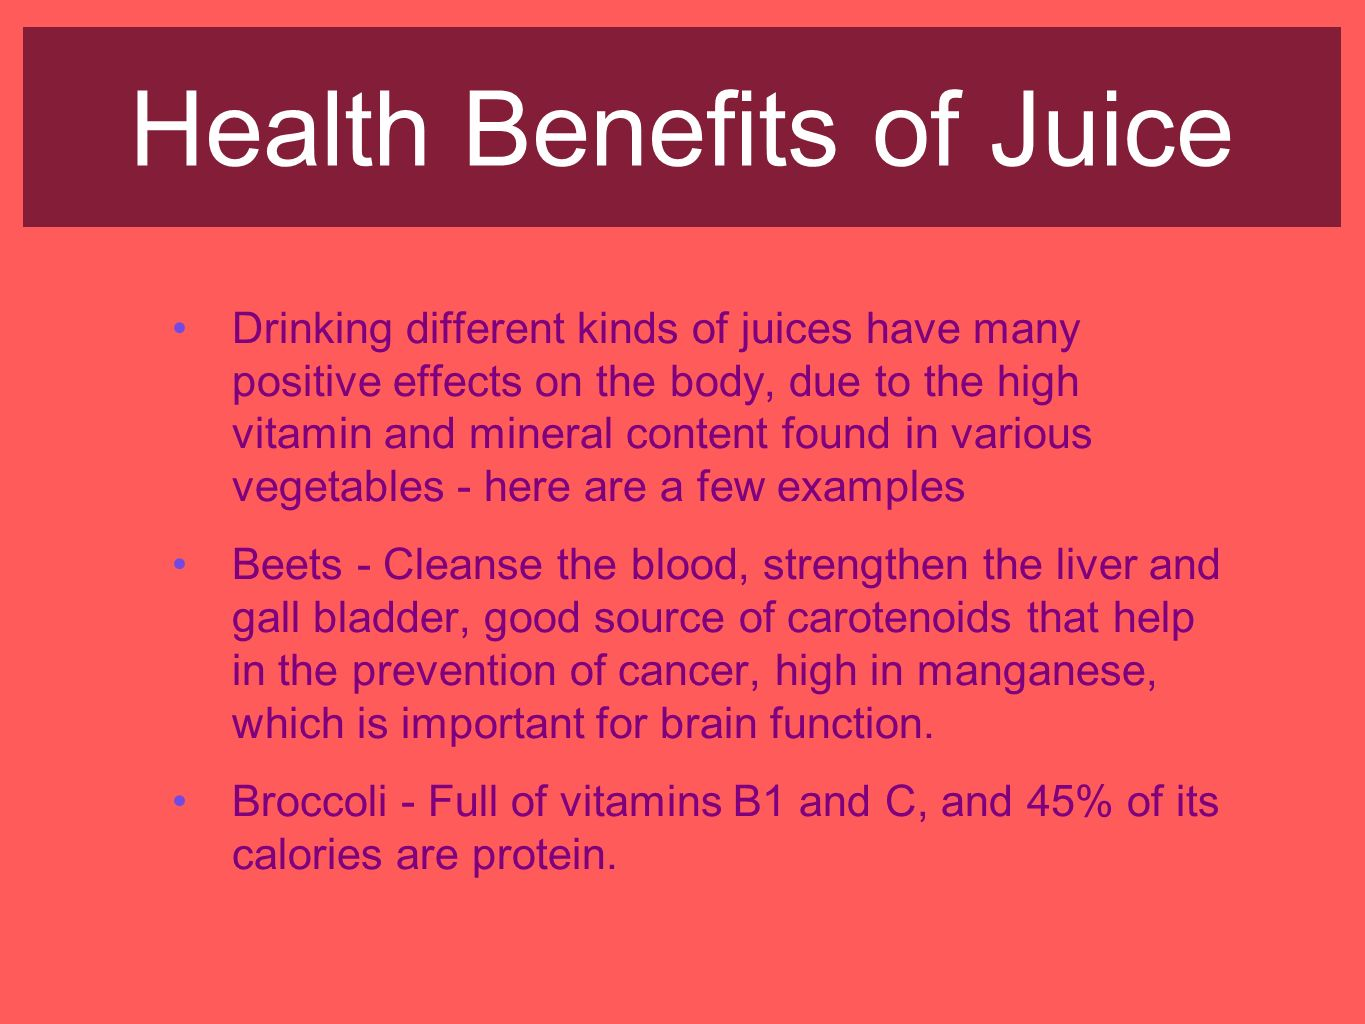 Health Benefits of Juice Drinking different kinds of juices have many positive effects on the body, due to the high vitamin and mineral content found in various vegetables - here are a few examples Beets - Cleanse the blood, strengthen the liver and gall bladder, good source of carotenoids that help in the prevention of cancer, high in manganese, which is important for brain function.